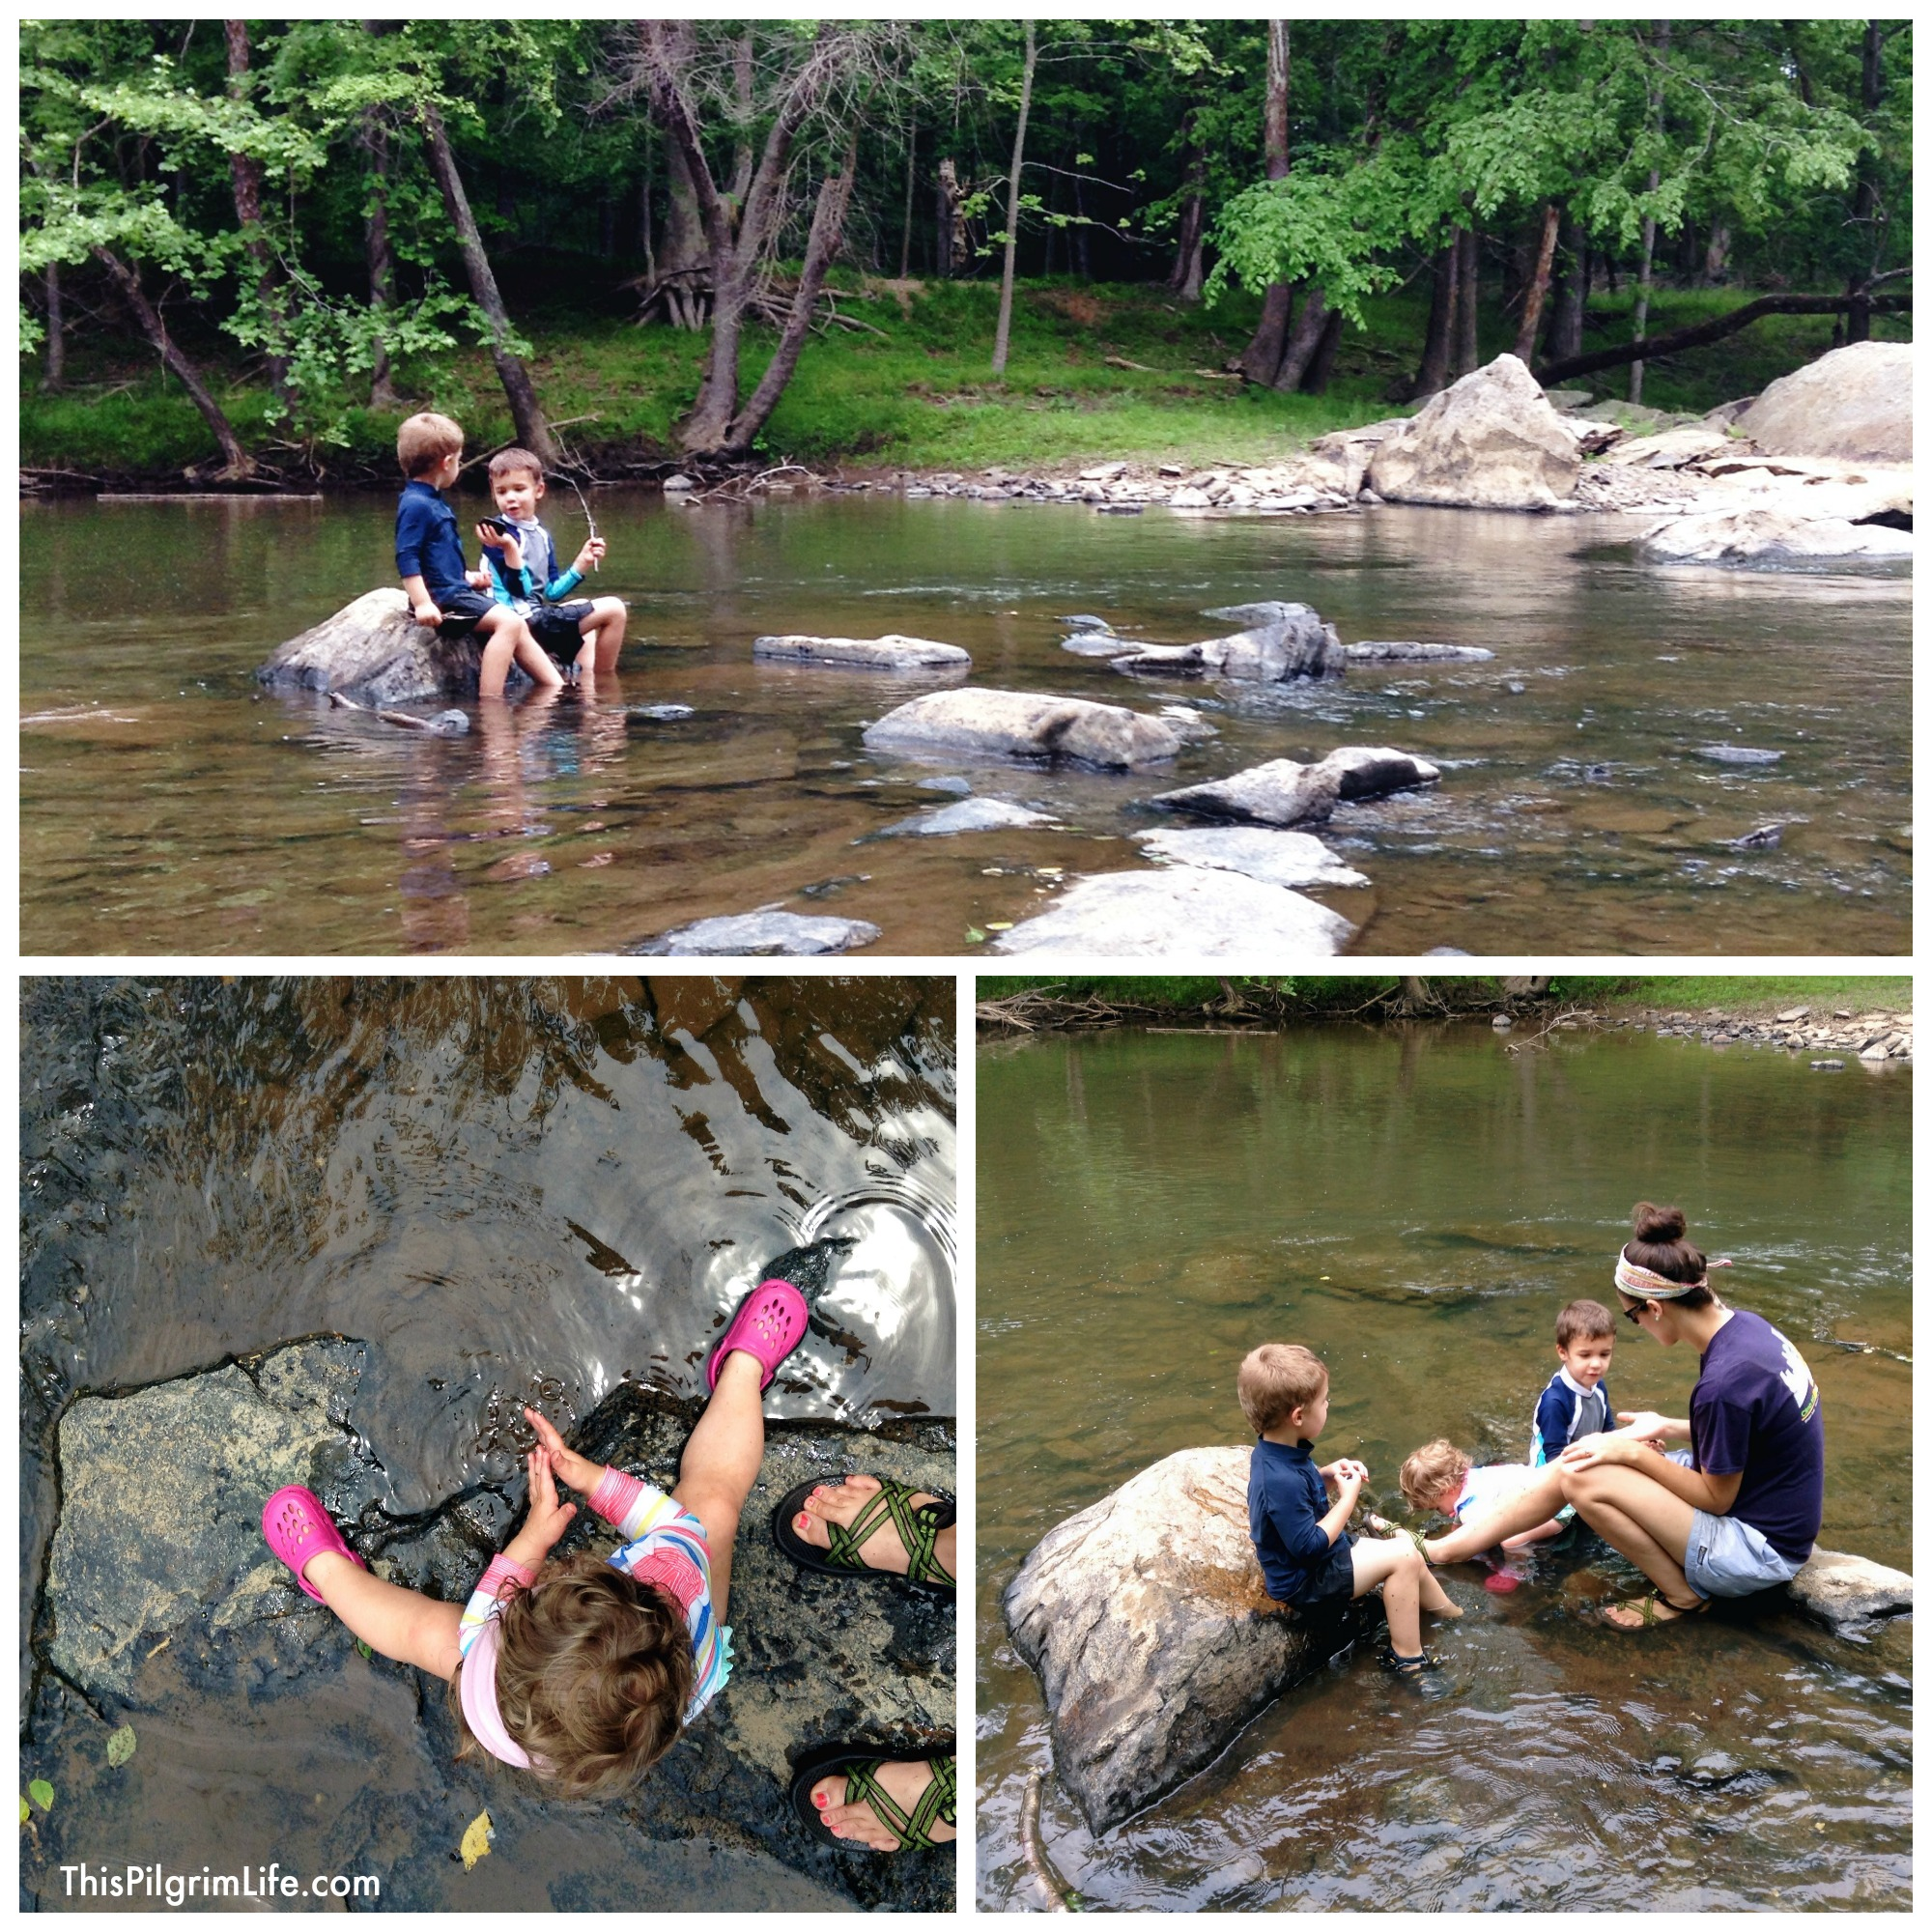 Playing in the river after going strawberry picking.